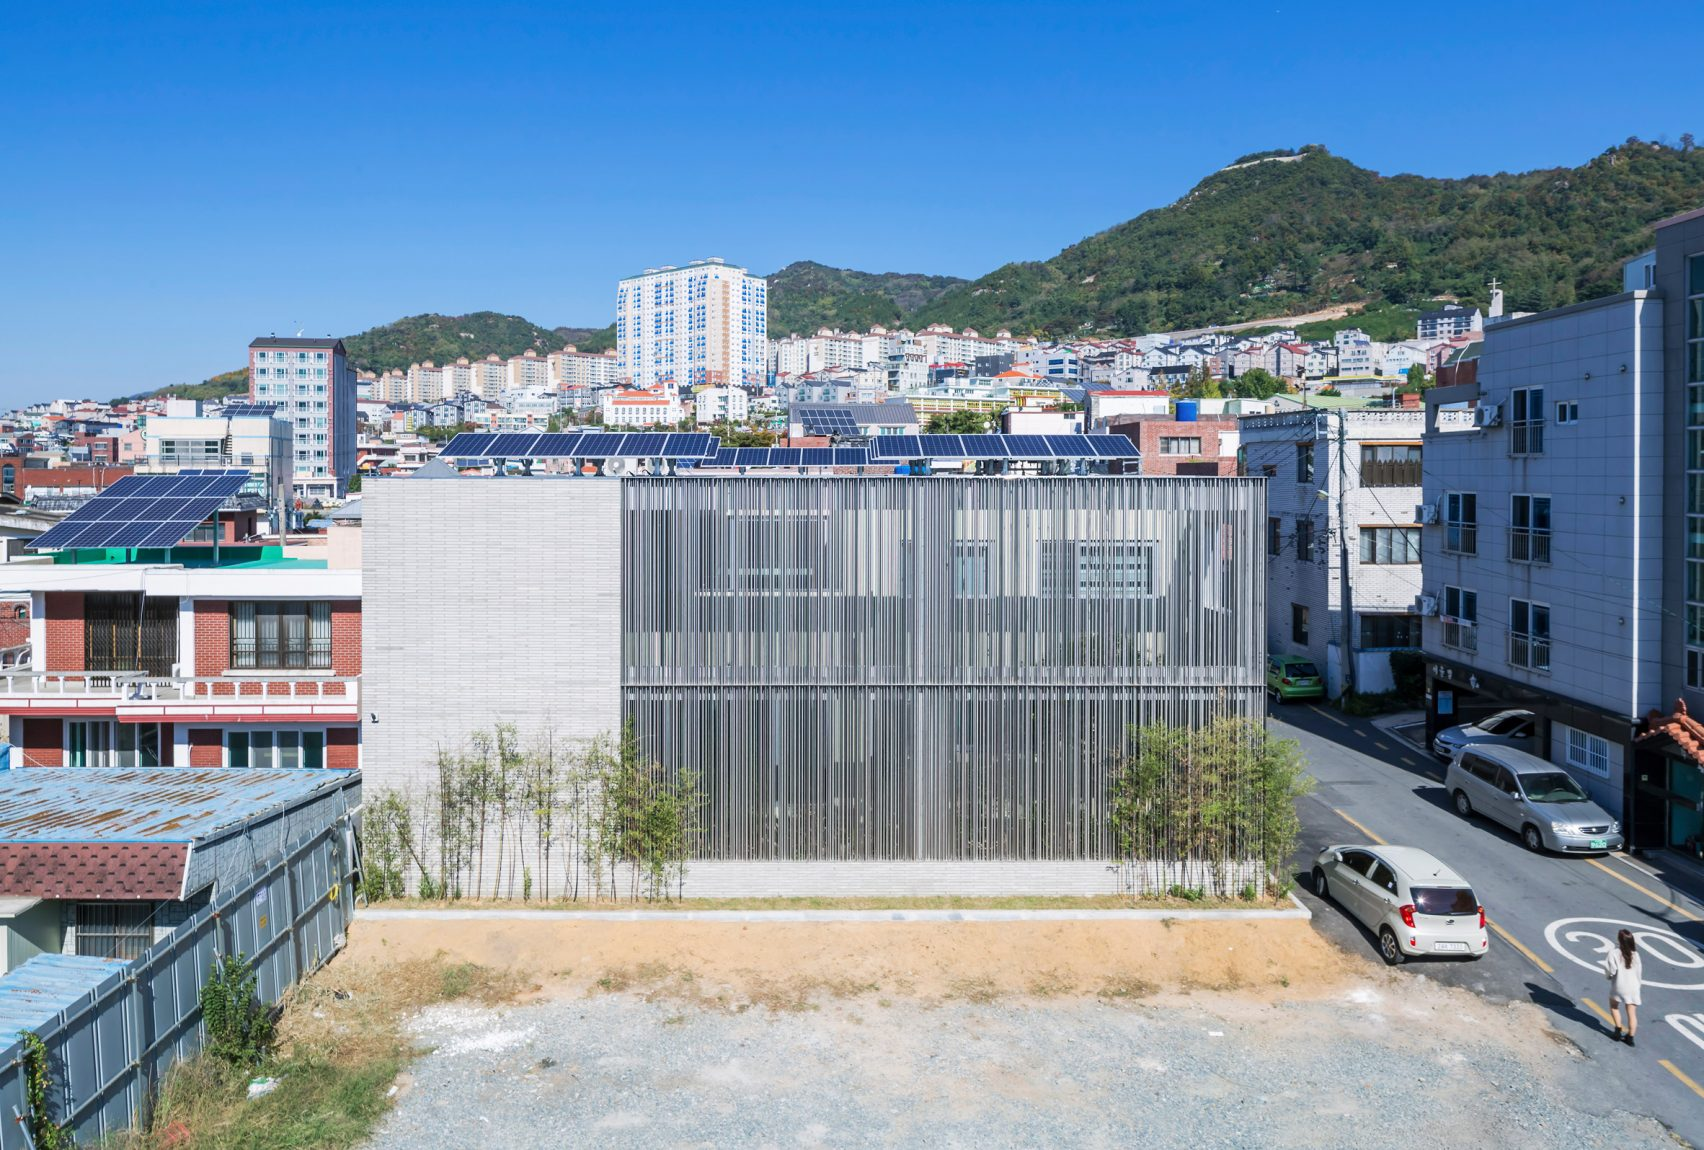 steel-grove-augmented-reality-architecture-residential-south-korea-courtyards-steel_dezeen_2364_col_8-1704x1150.jpg